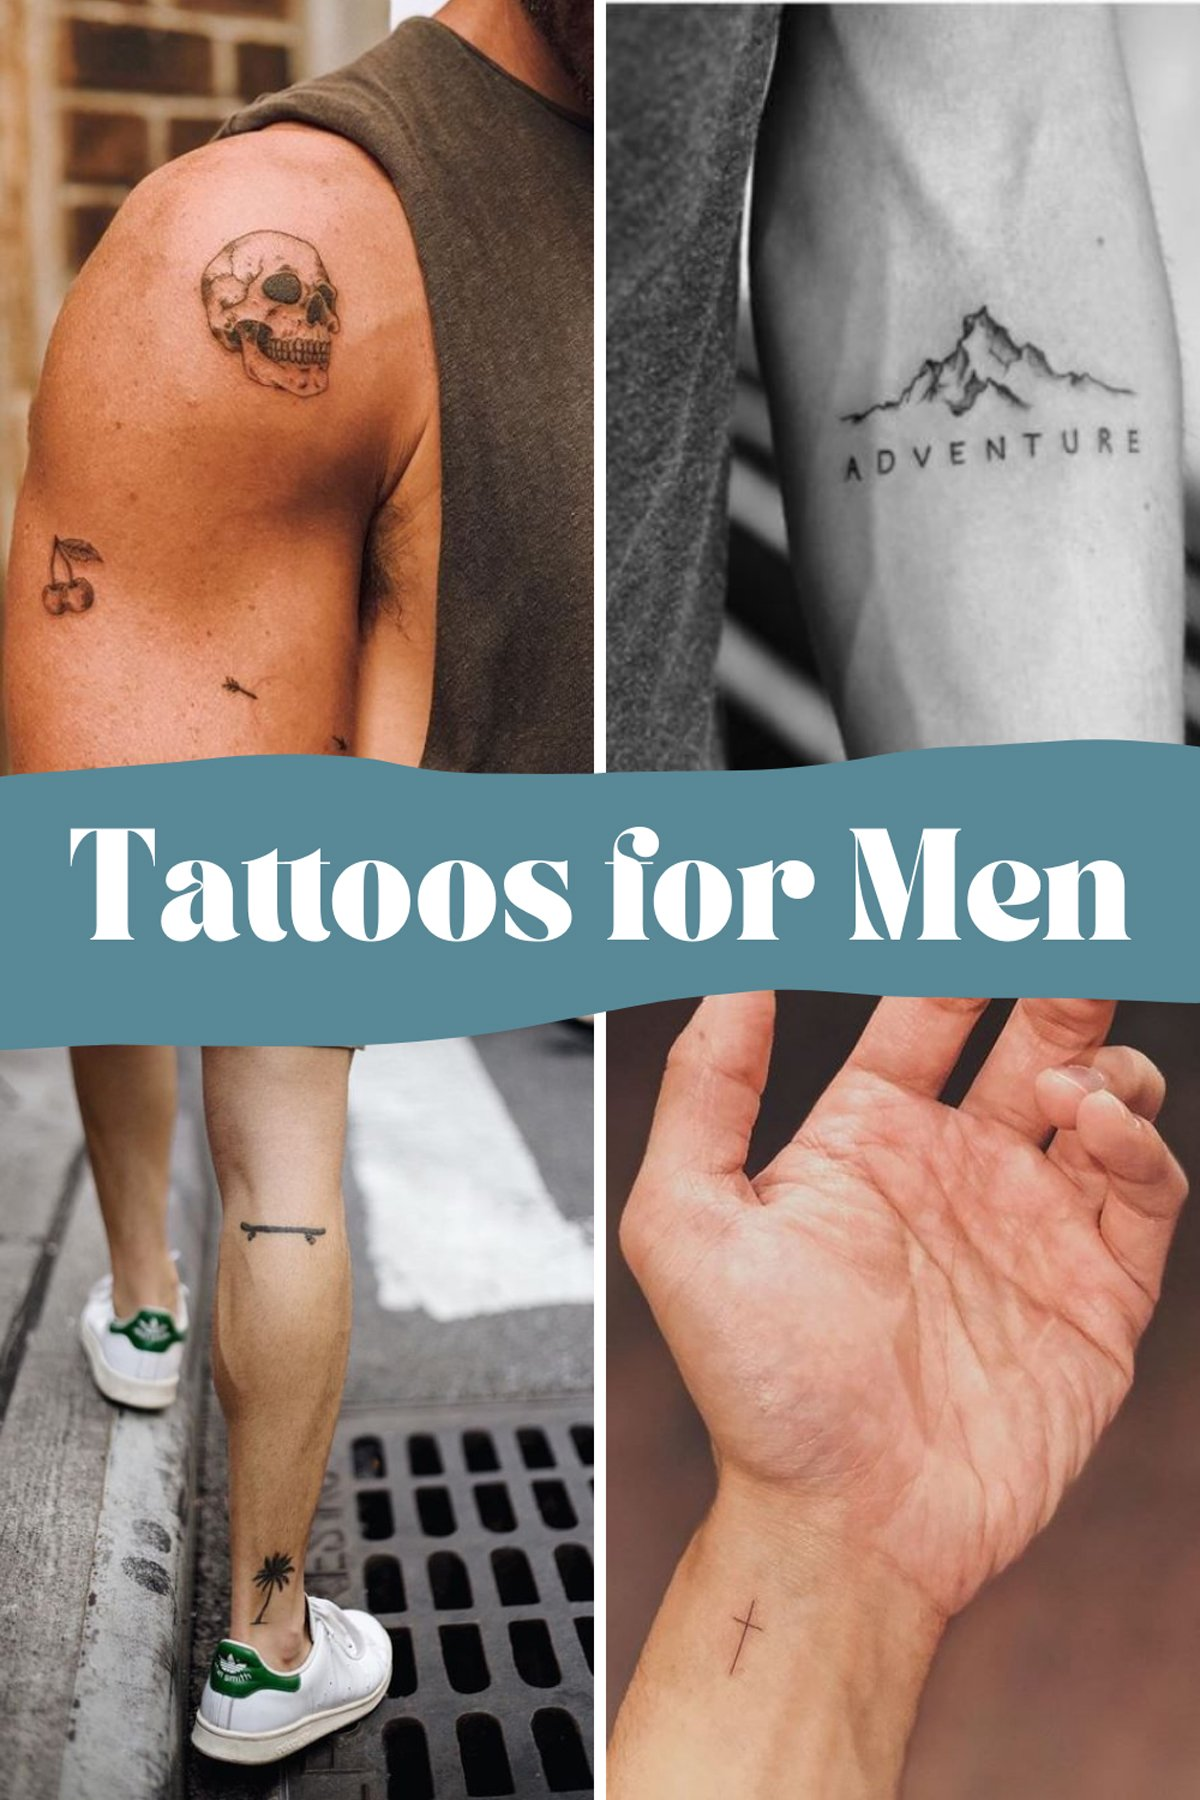 Small tattoos for guys